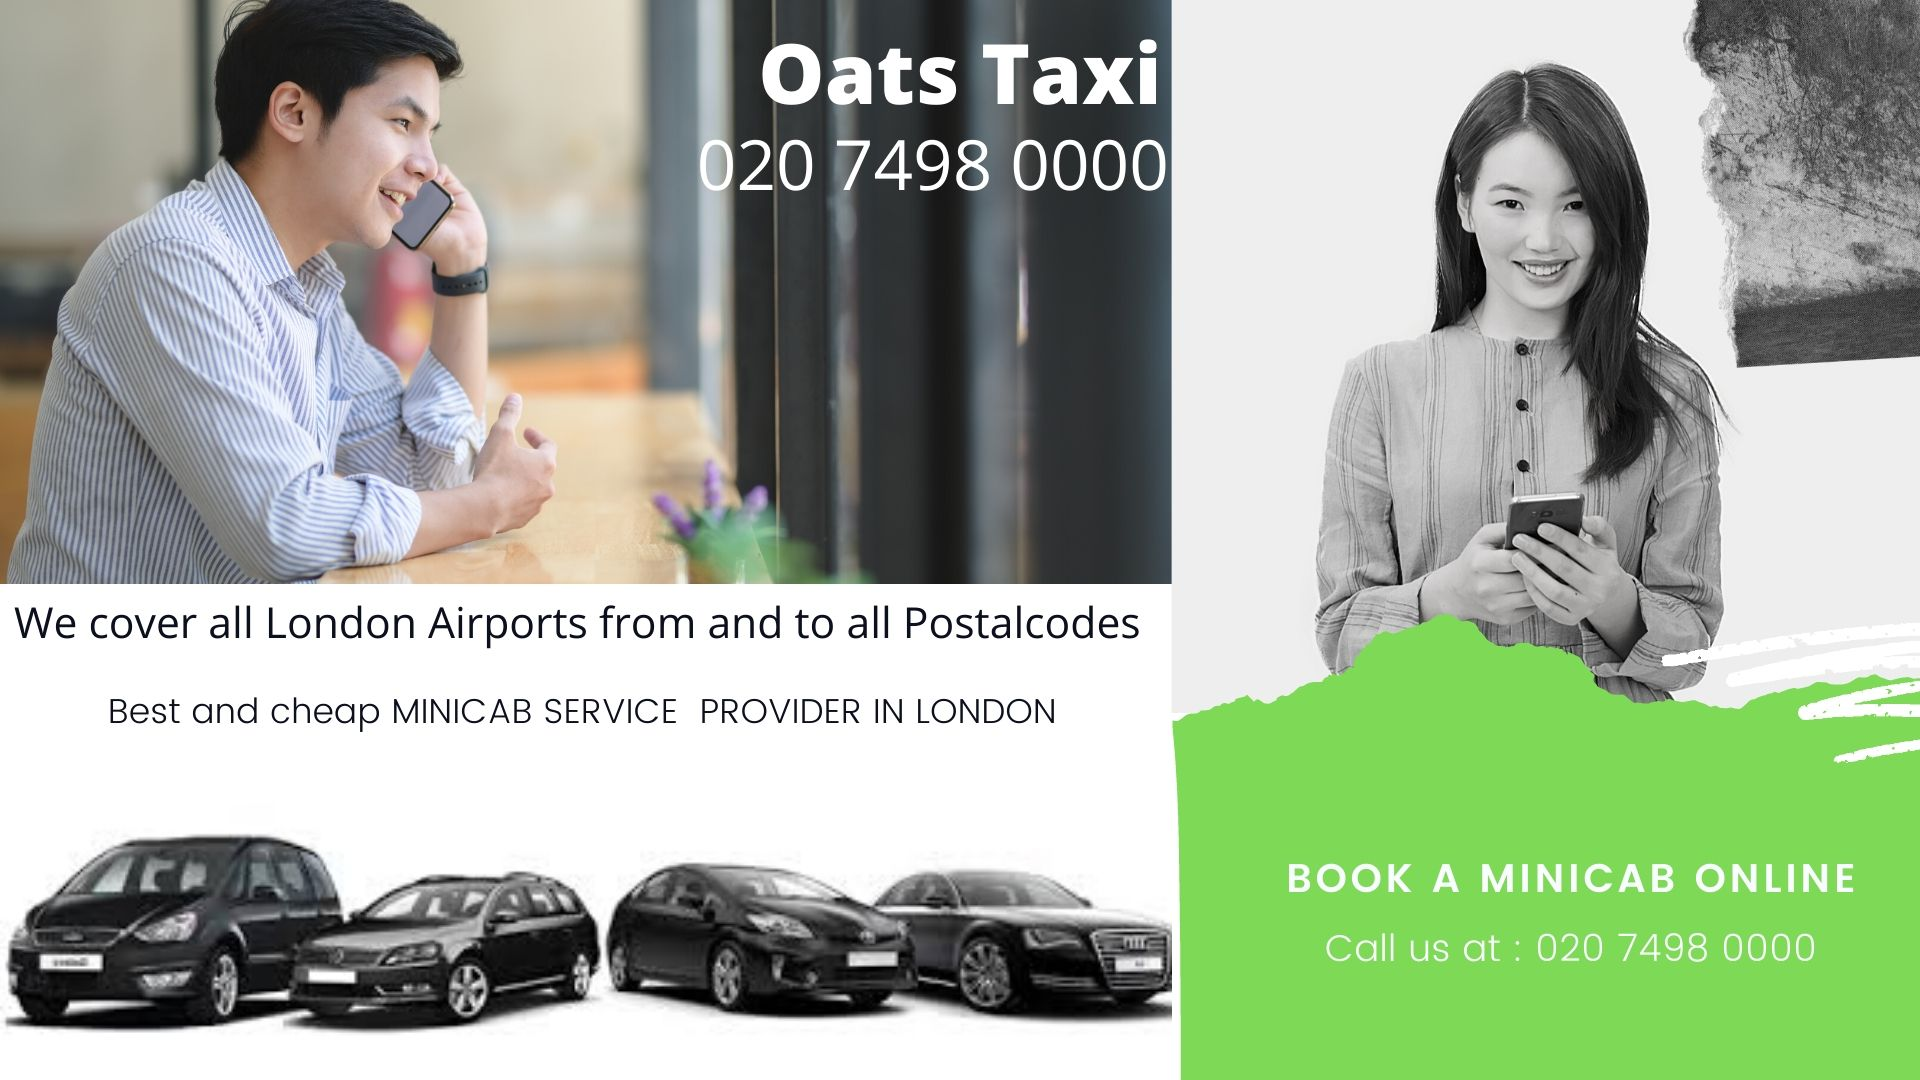 Minicab Office Near GRANDISON ROAD, Battersea SW11, Minicab From Battersea SW11 To Gatwick Airport